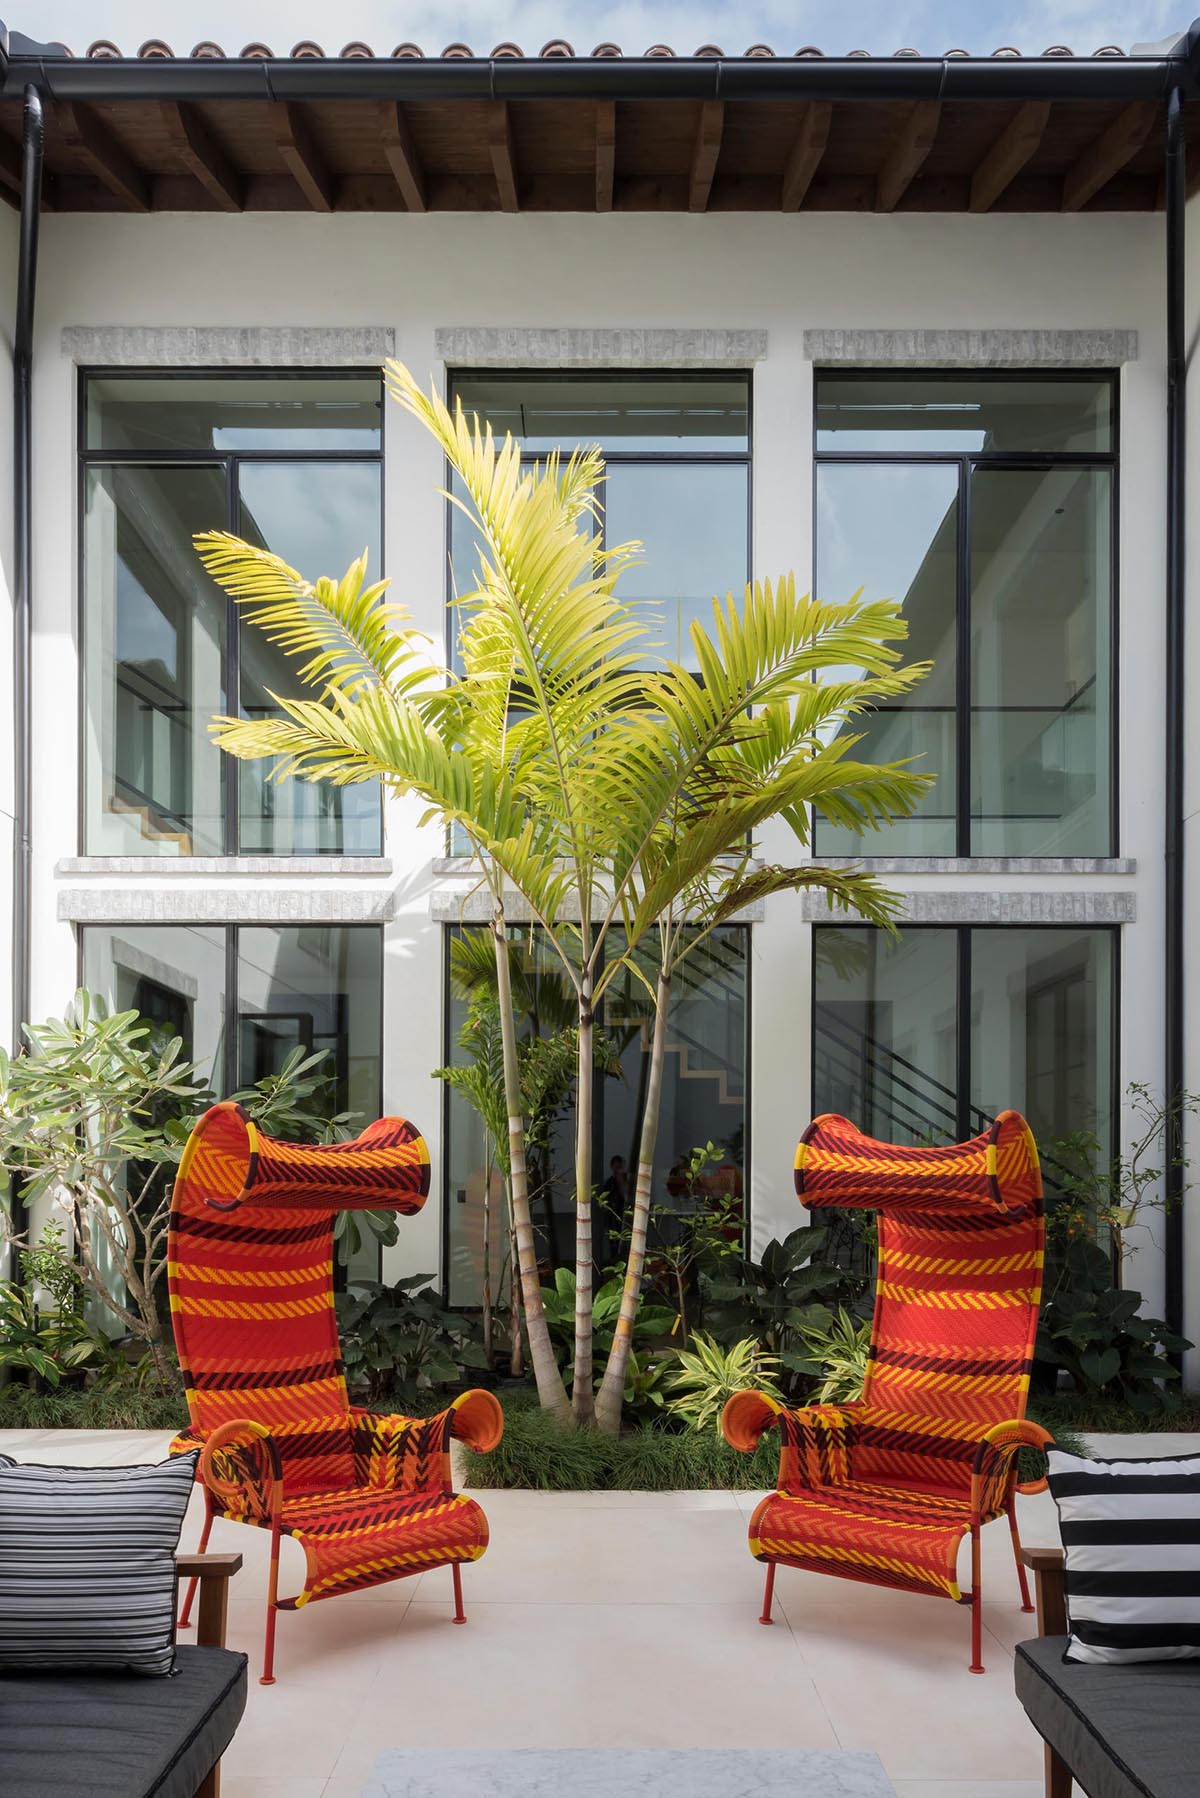 An internal courtyard has a tiled patio with lounges and sculptural chairs, while a garden alongside one wall adds greenery.